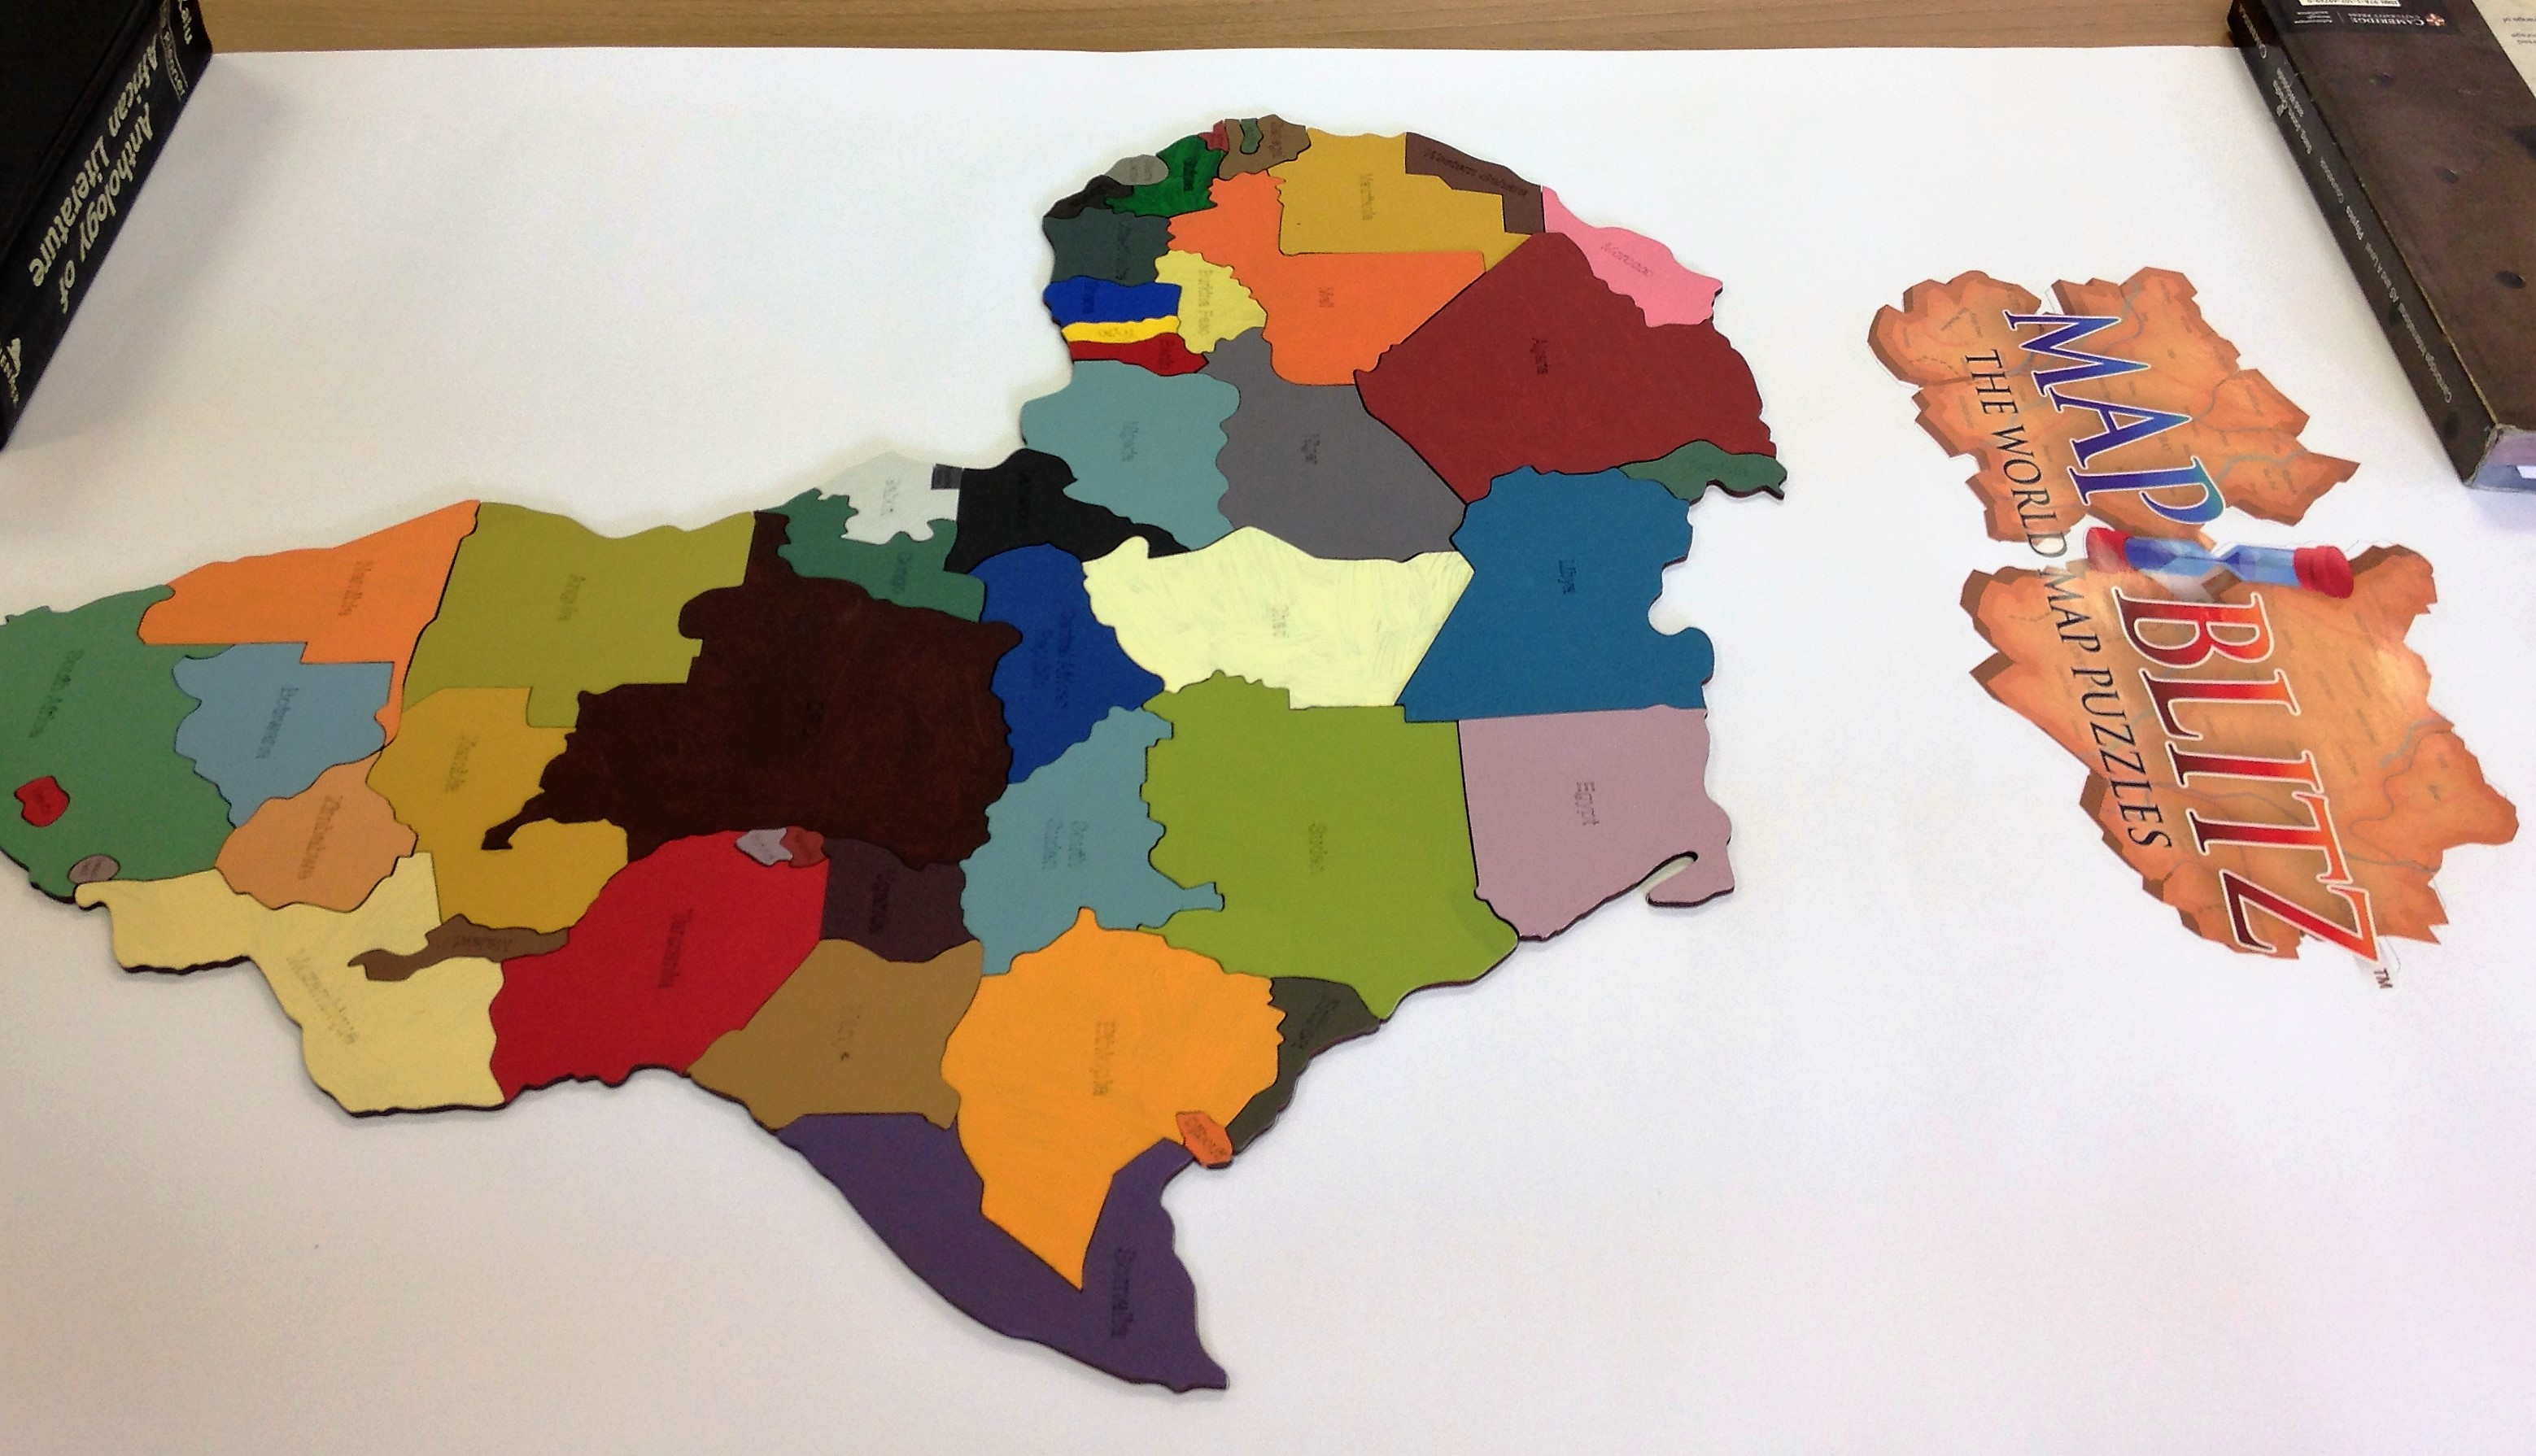 A proudly south african product map blitz is a new unique map blitz is a proudly south african product made in south africa each country is a wooden piece for example map blitz africa has 49 inland pieces each gumiabroncs Image collections